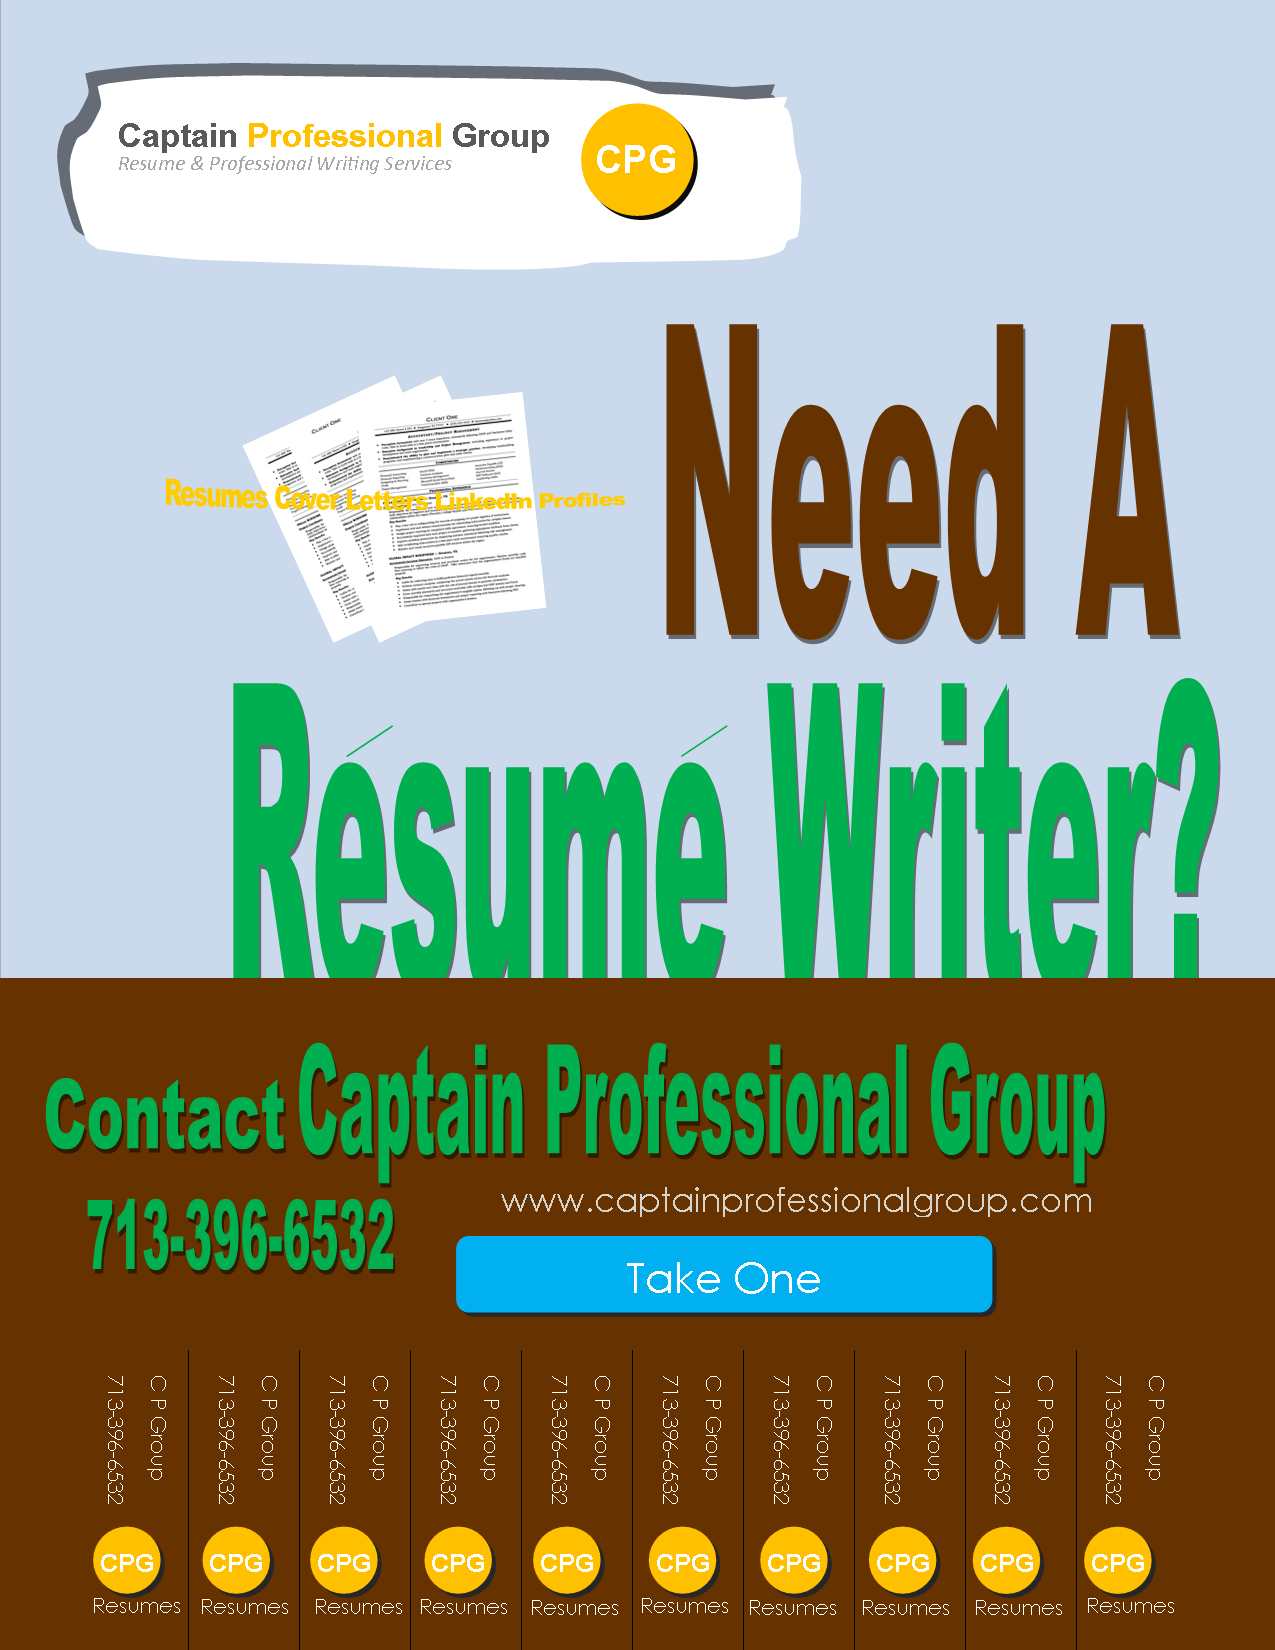 Need a resume writer? We will write your resume for you